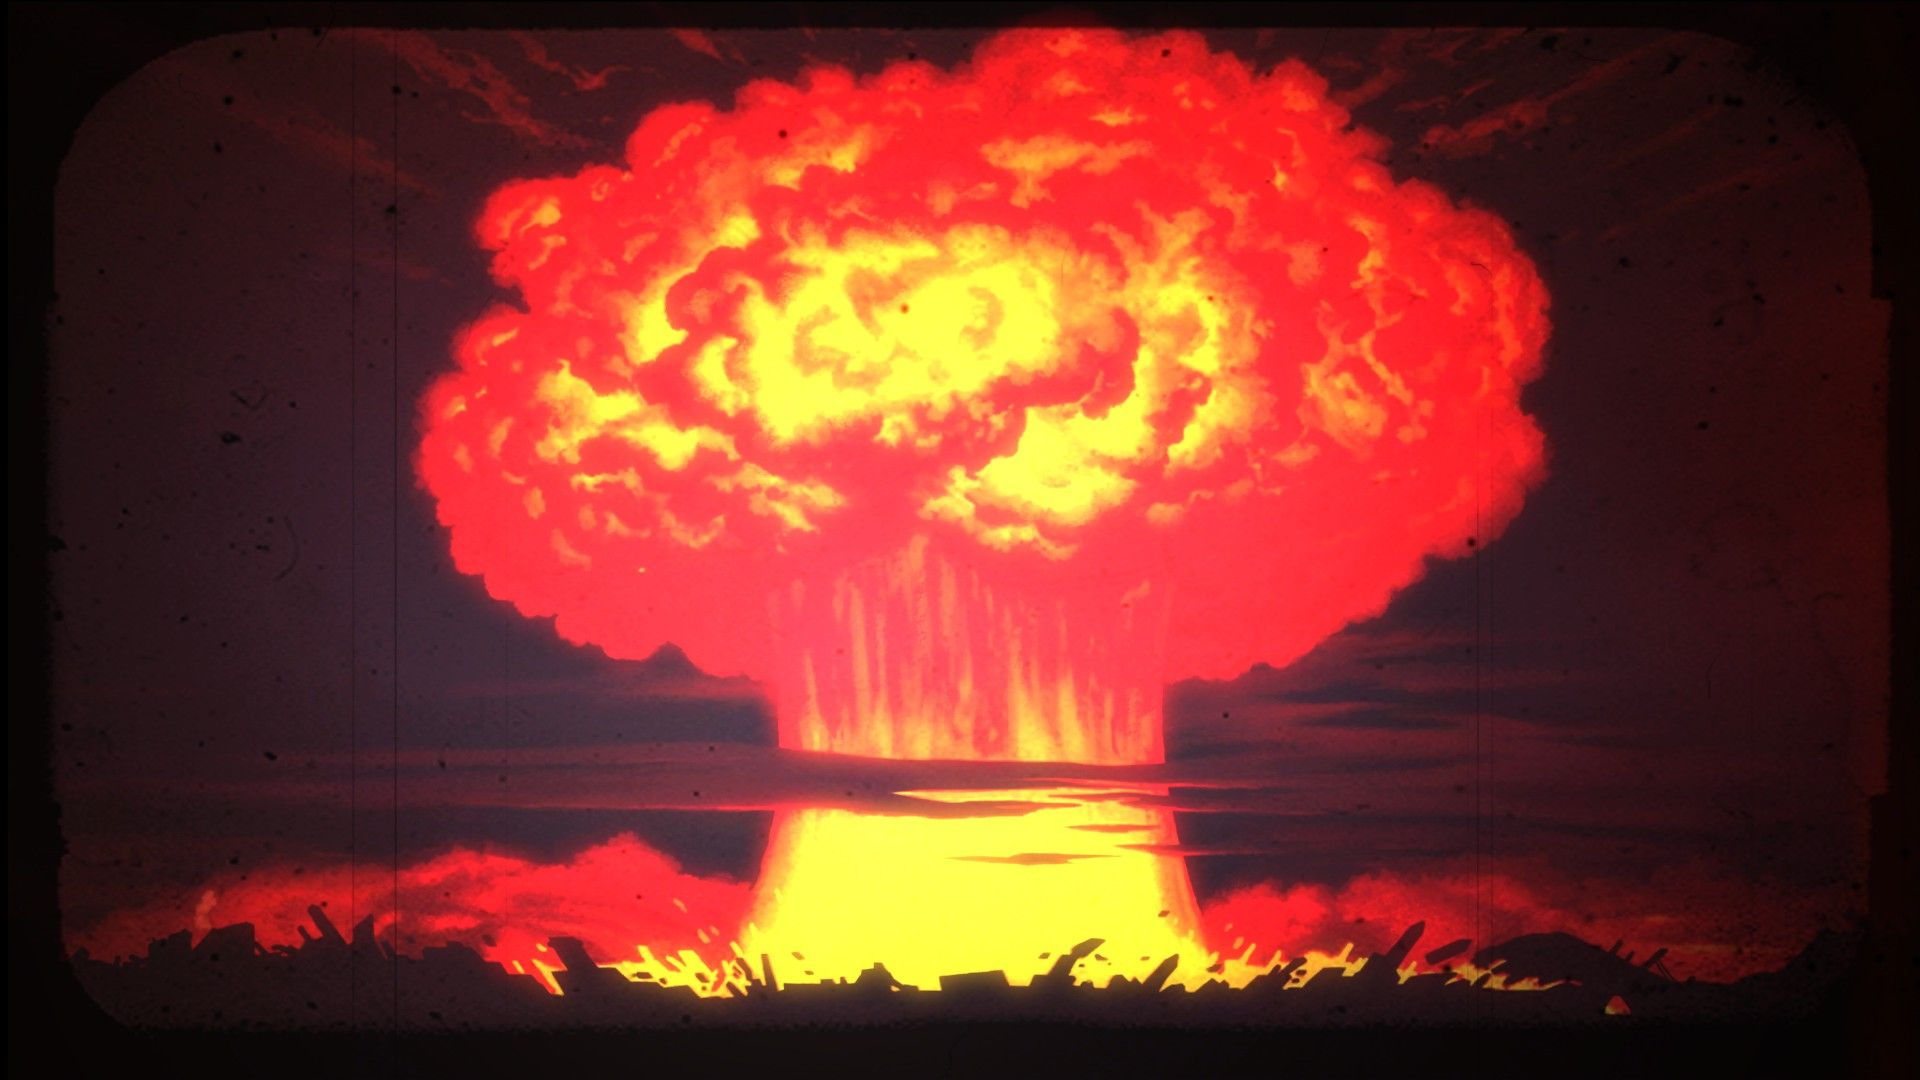 Nuclear Mushroom Cloud for Vault 17 Fallout Shelter